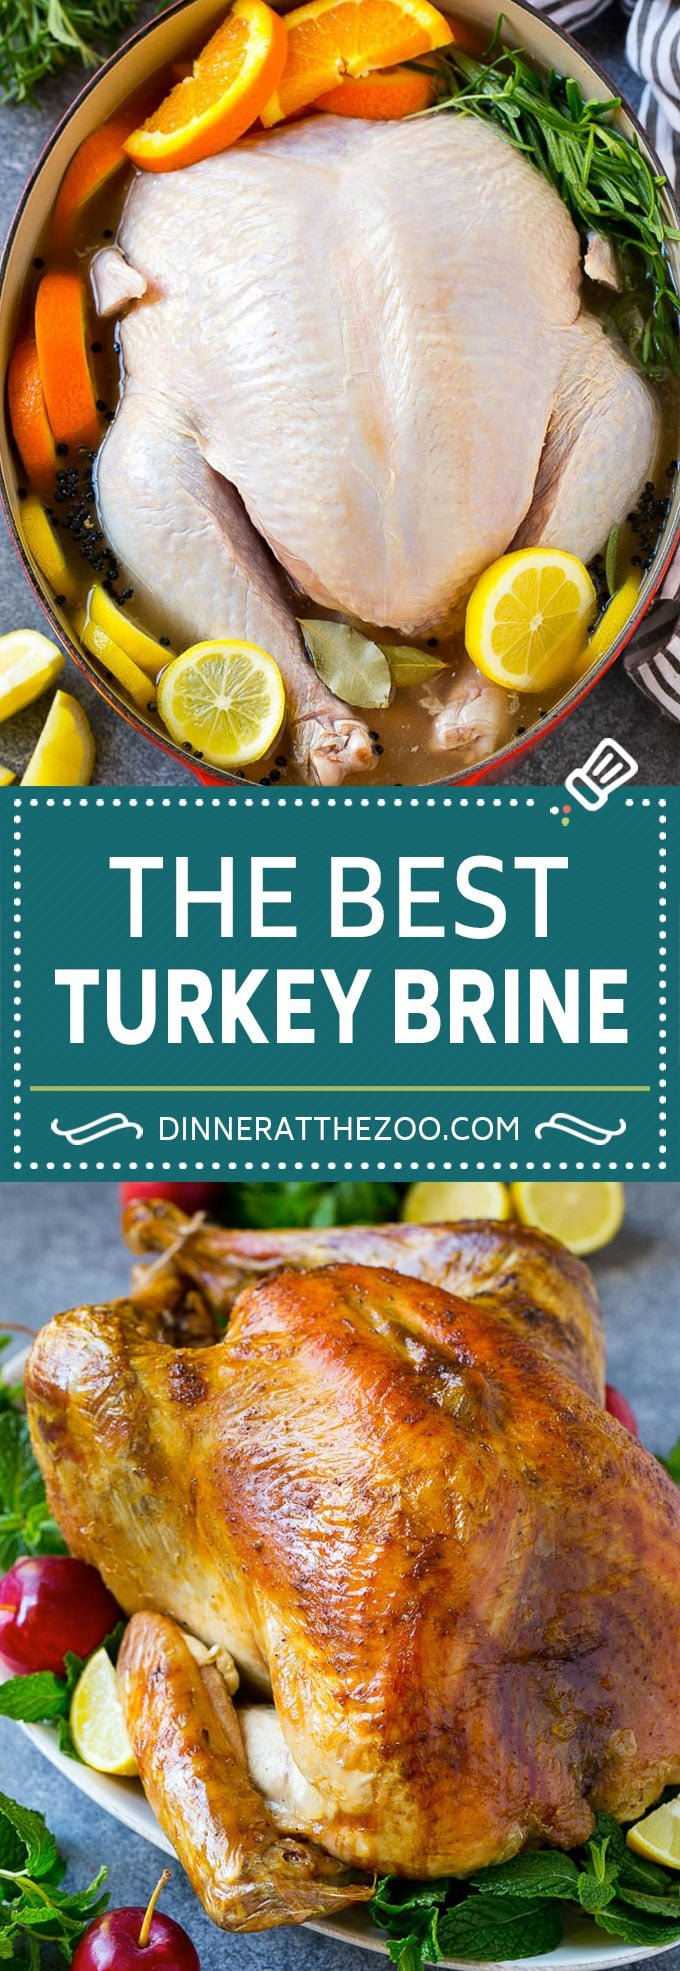 Turkey Brine Recipe | Brined Turkey | Roasted Turkey | Thanksgiving Turkey #turkey #thanksgiving #fall #brine #dinner #christmas #dinneratthezoo